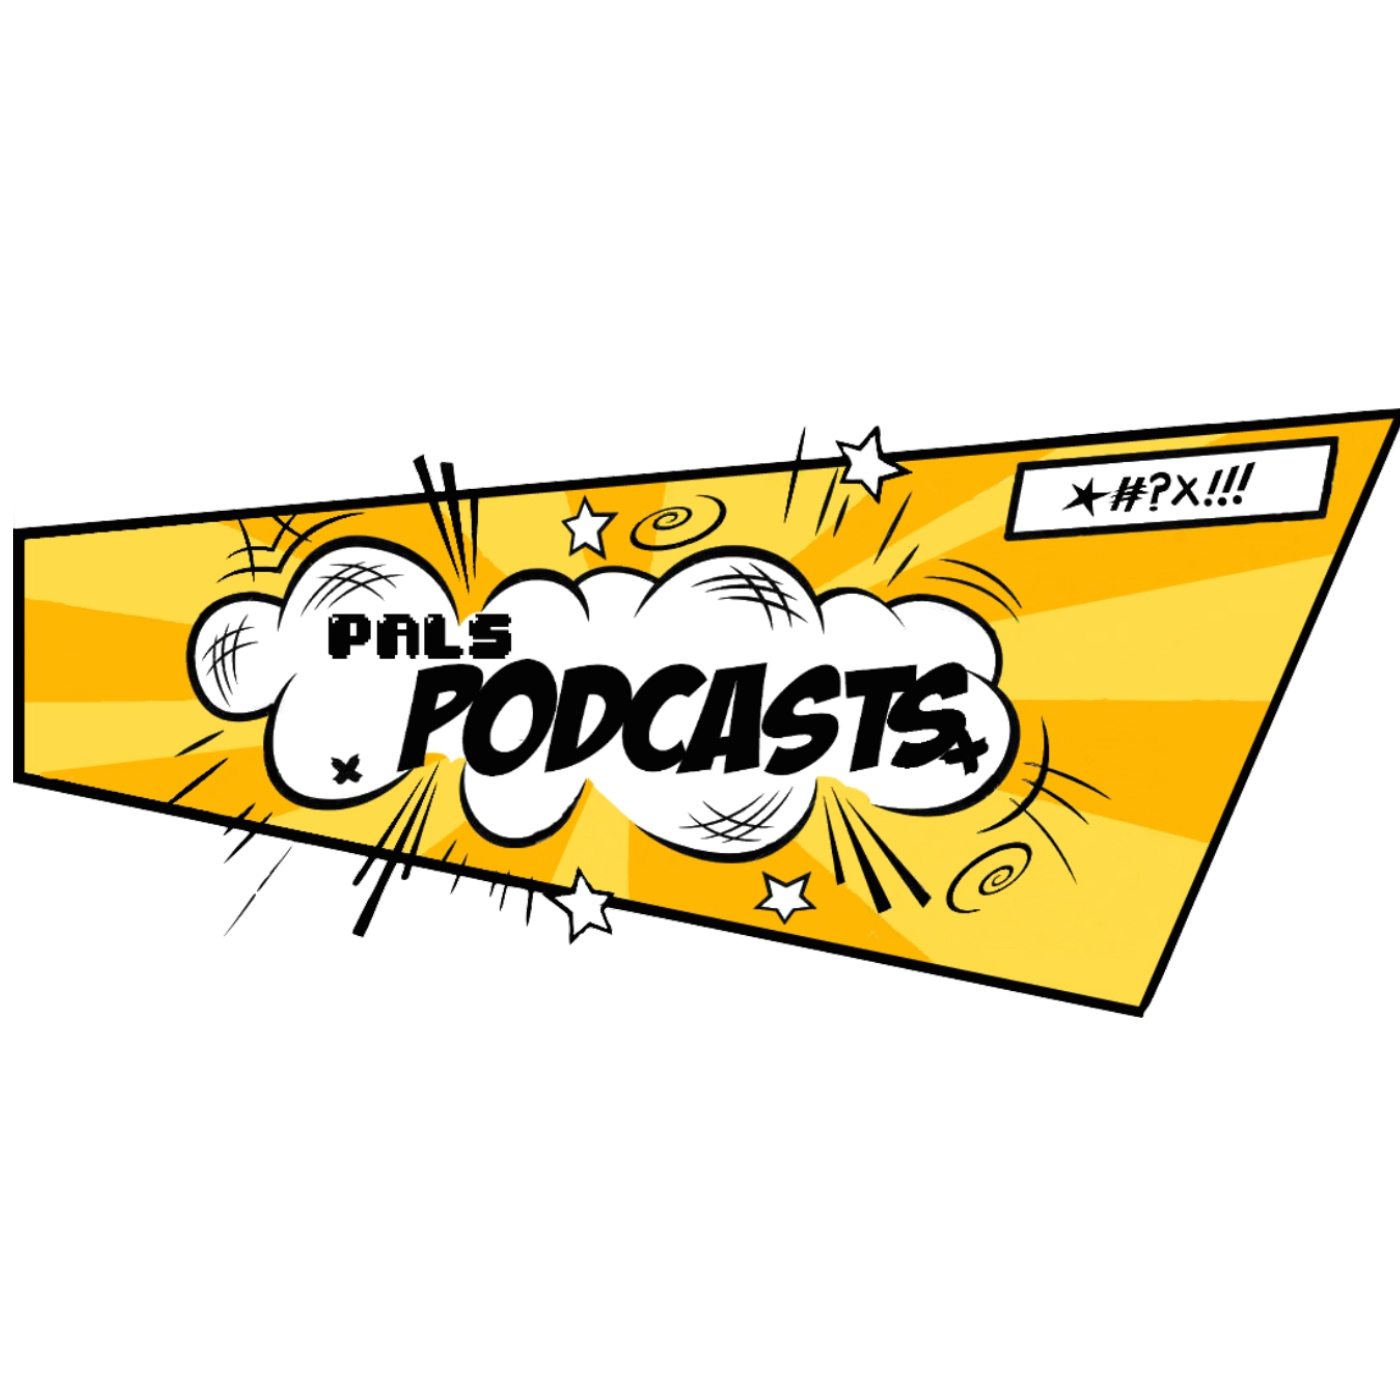 PALS Podcasts